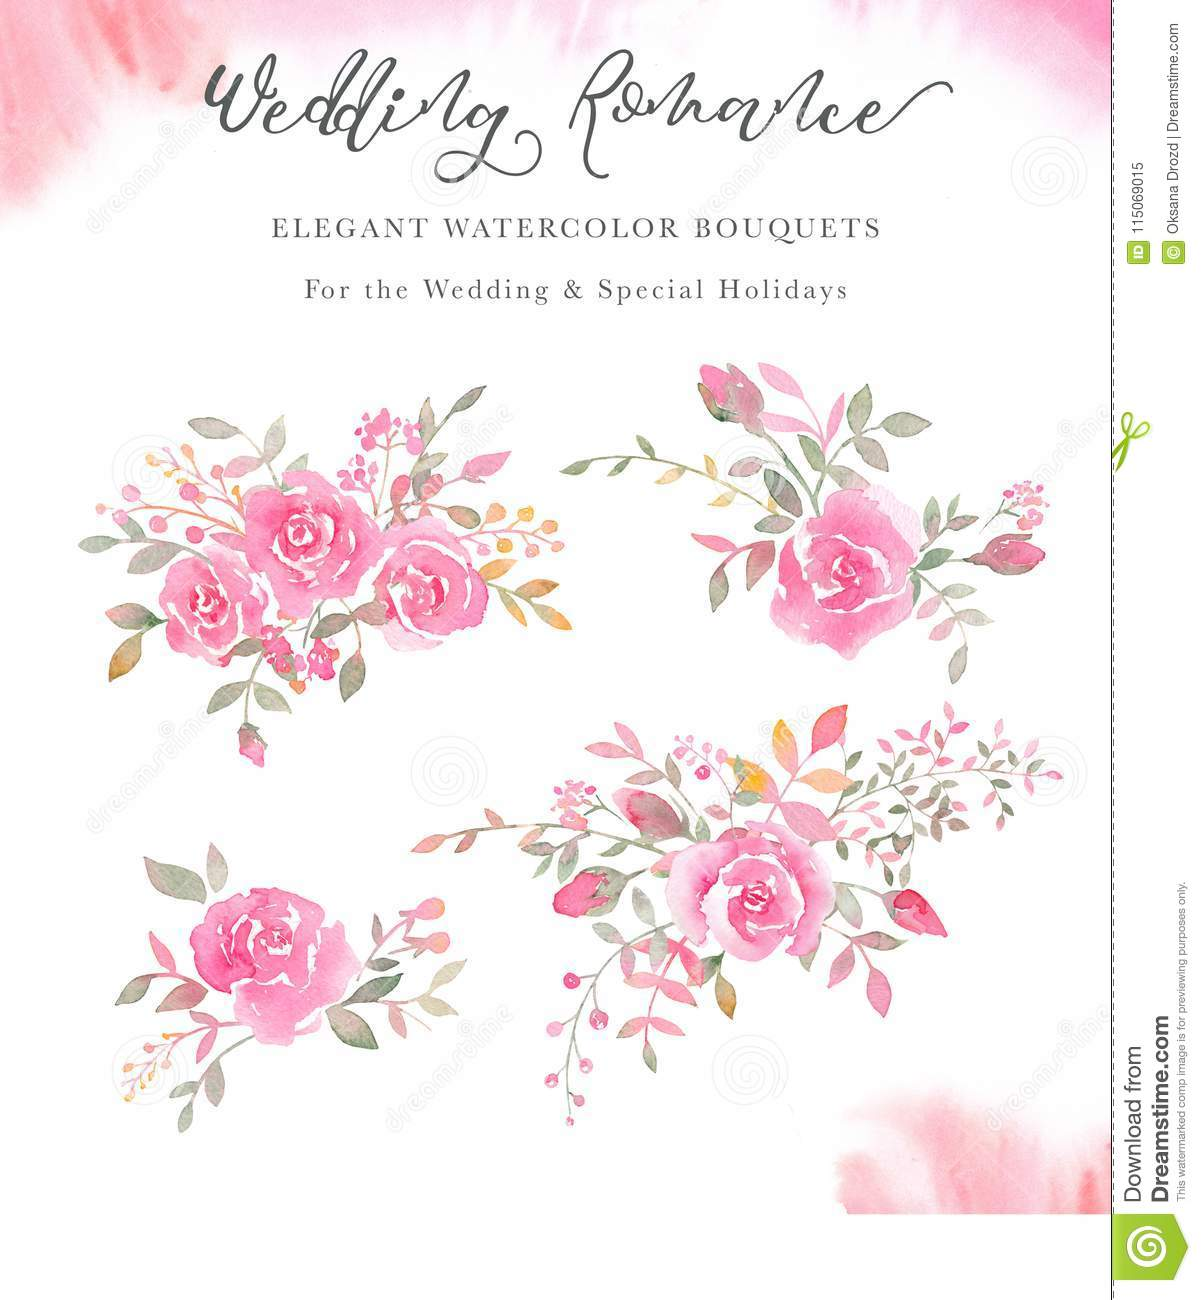 Handpainted Watercolor Arrangements With Rose Flowers Rosebuds